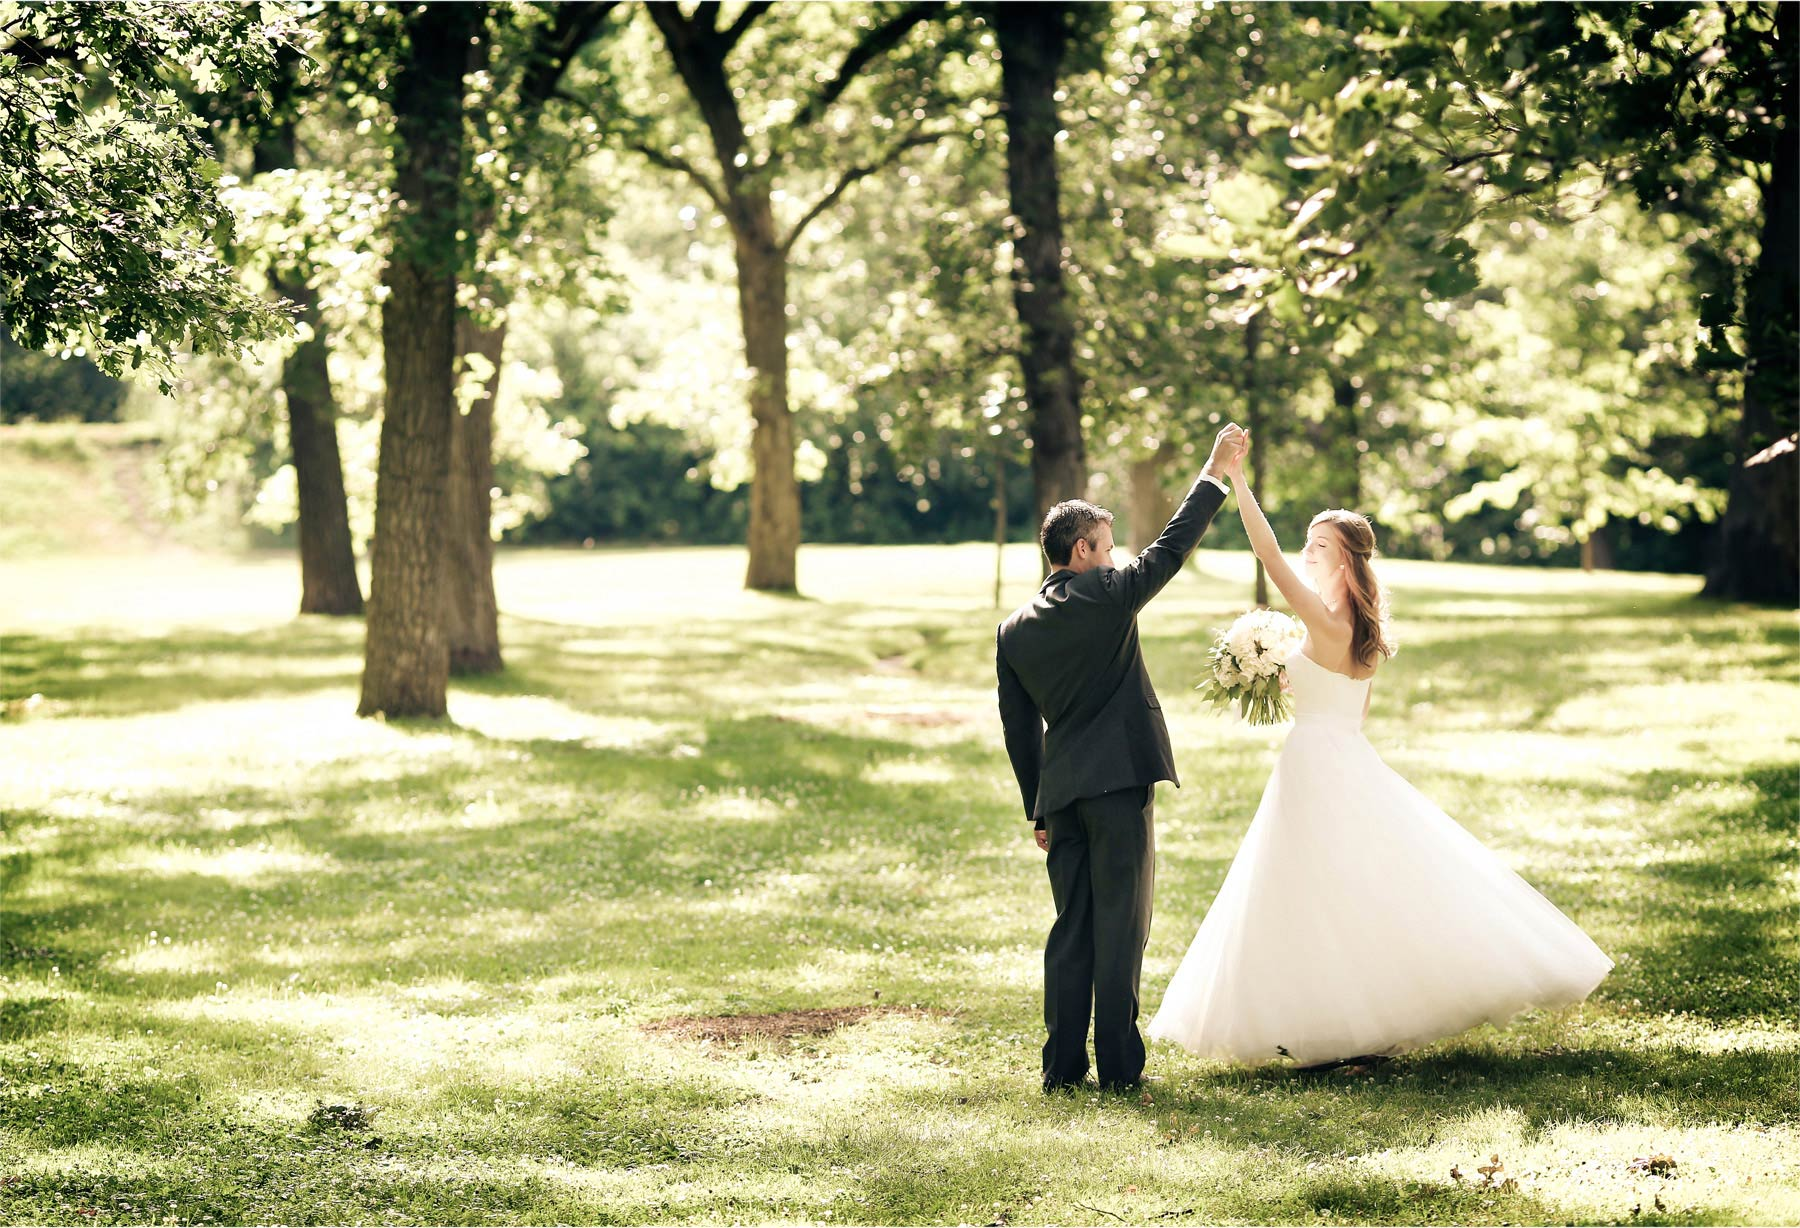 11-Minneapolis-Minnesota-Wedding-Photographer-by-Andrew-Vick-Photography-Summer-Woods-Bride-Groom-Dance-Twirl-Vintage-Katie-and-Travis.jpg